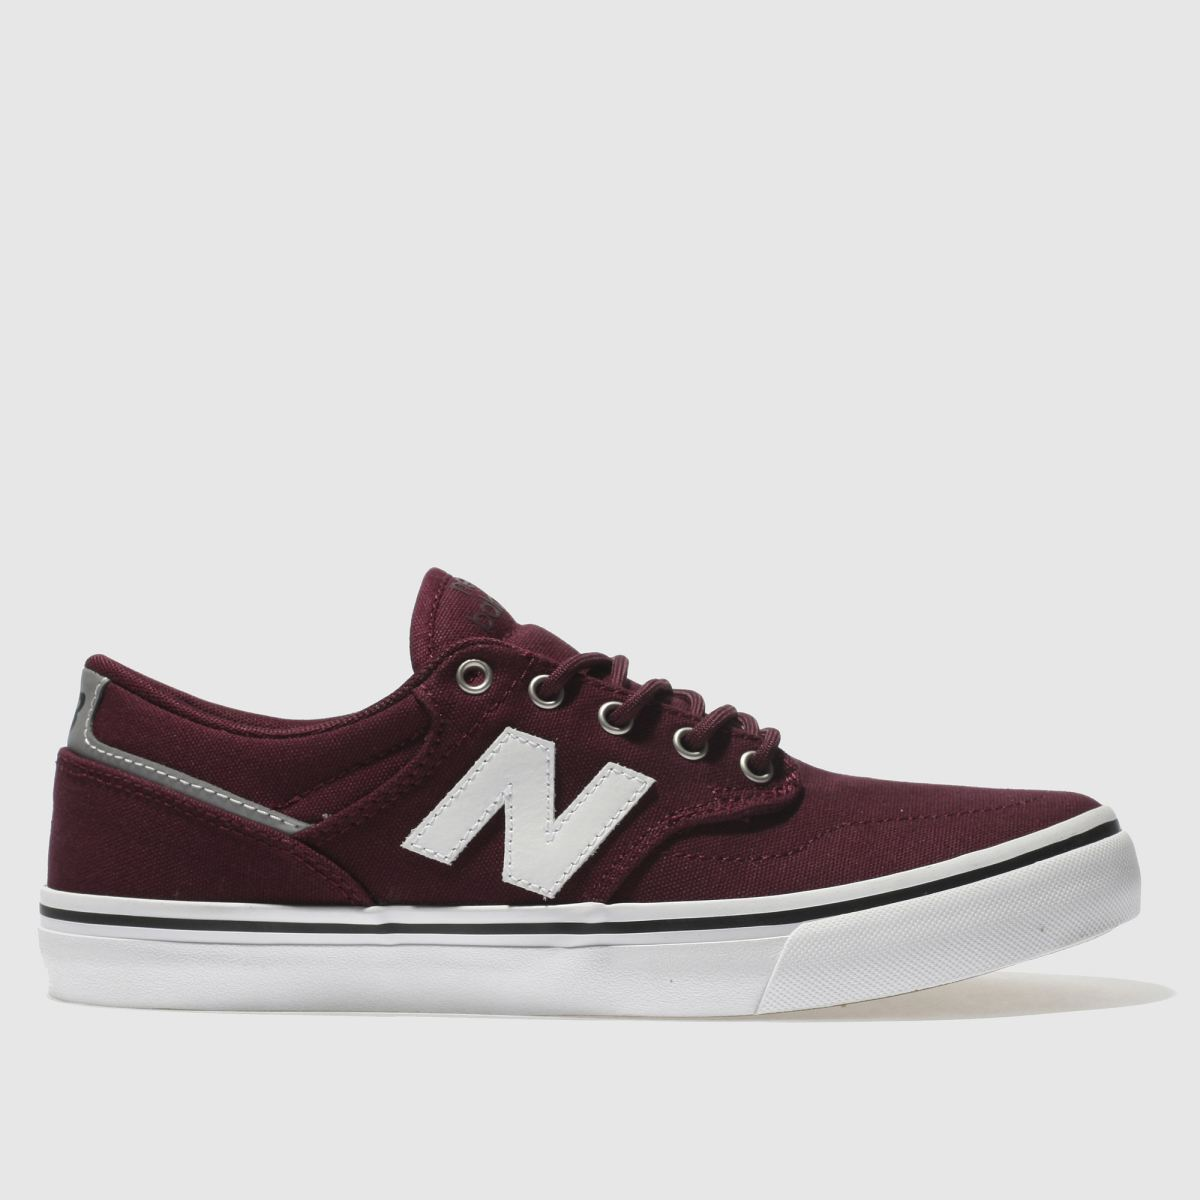 New Balance Burgundy All Coasts 331 Trainers